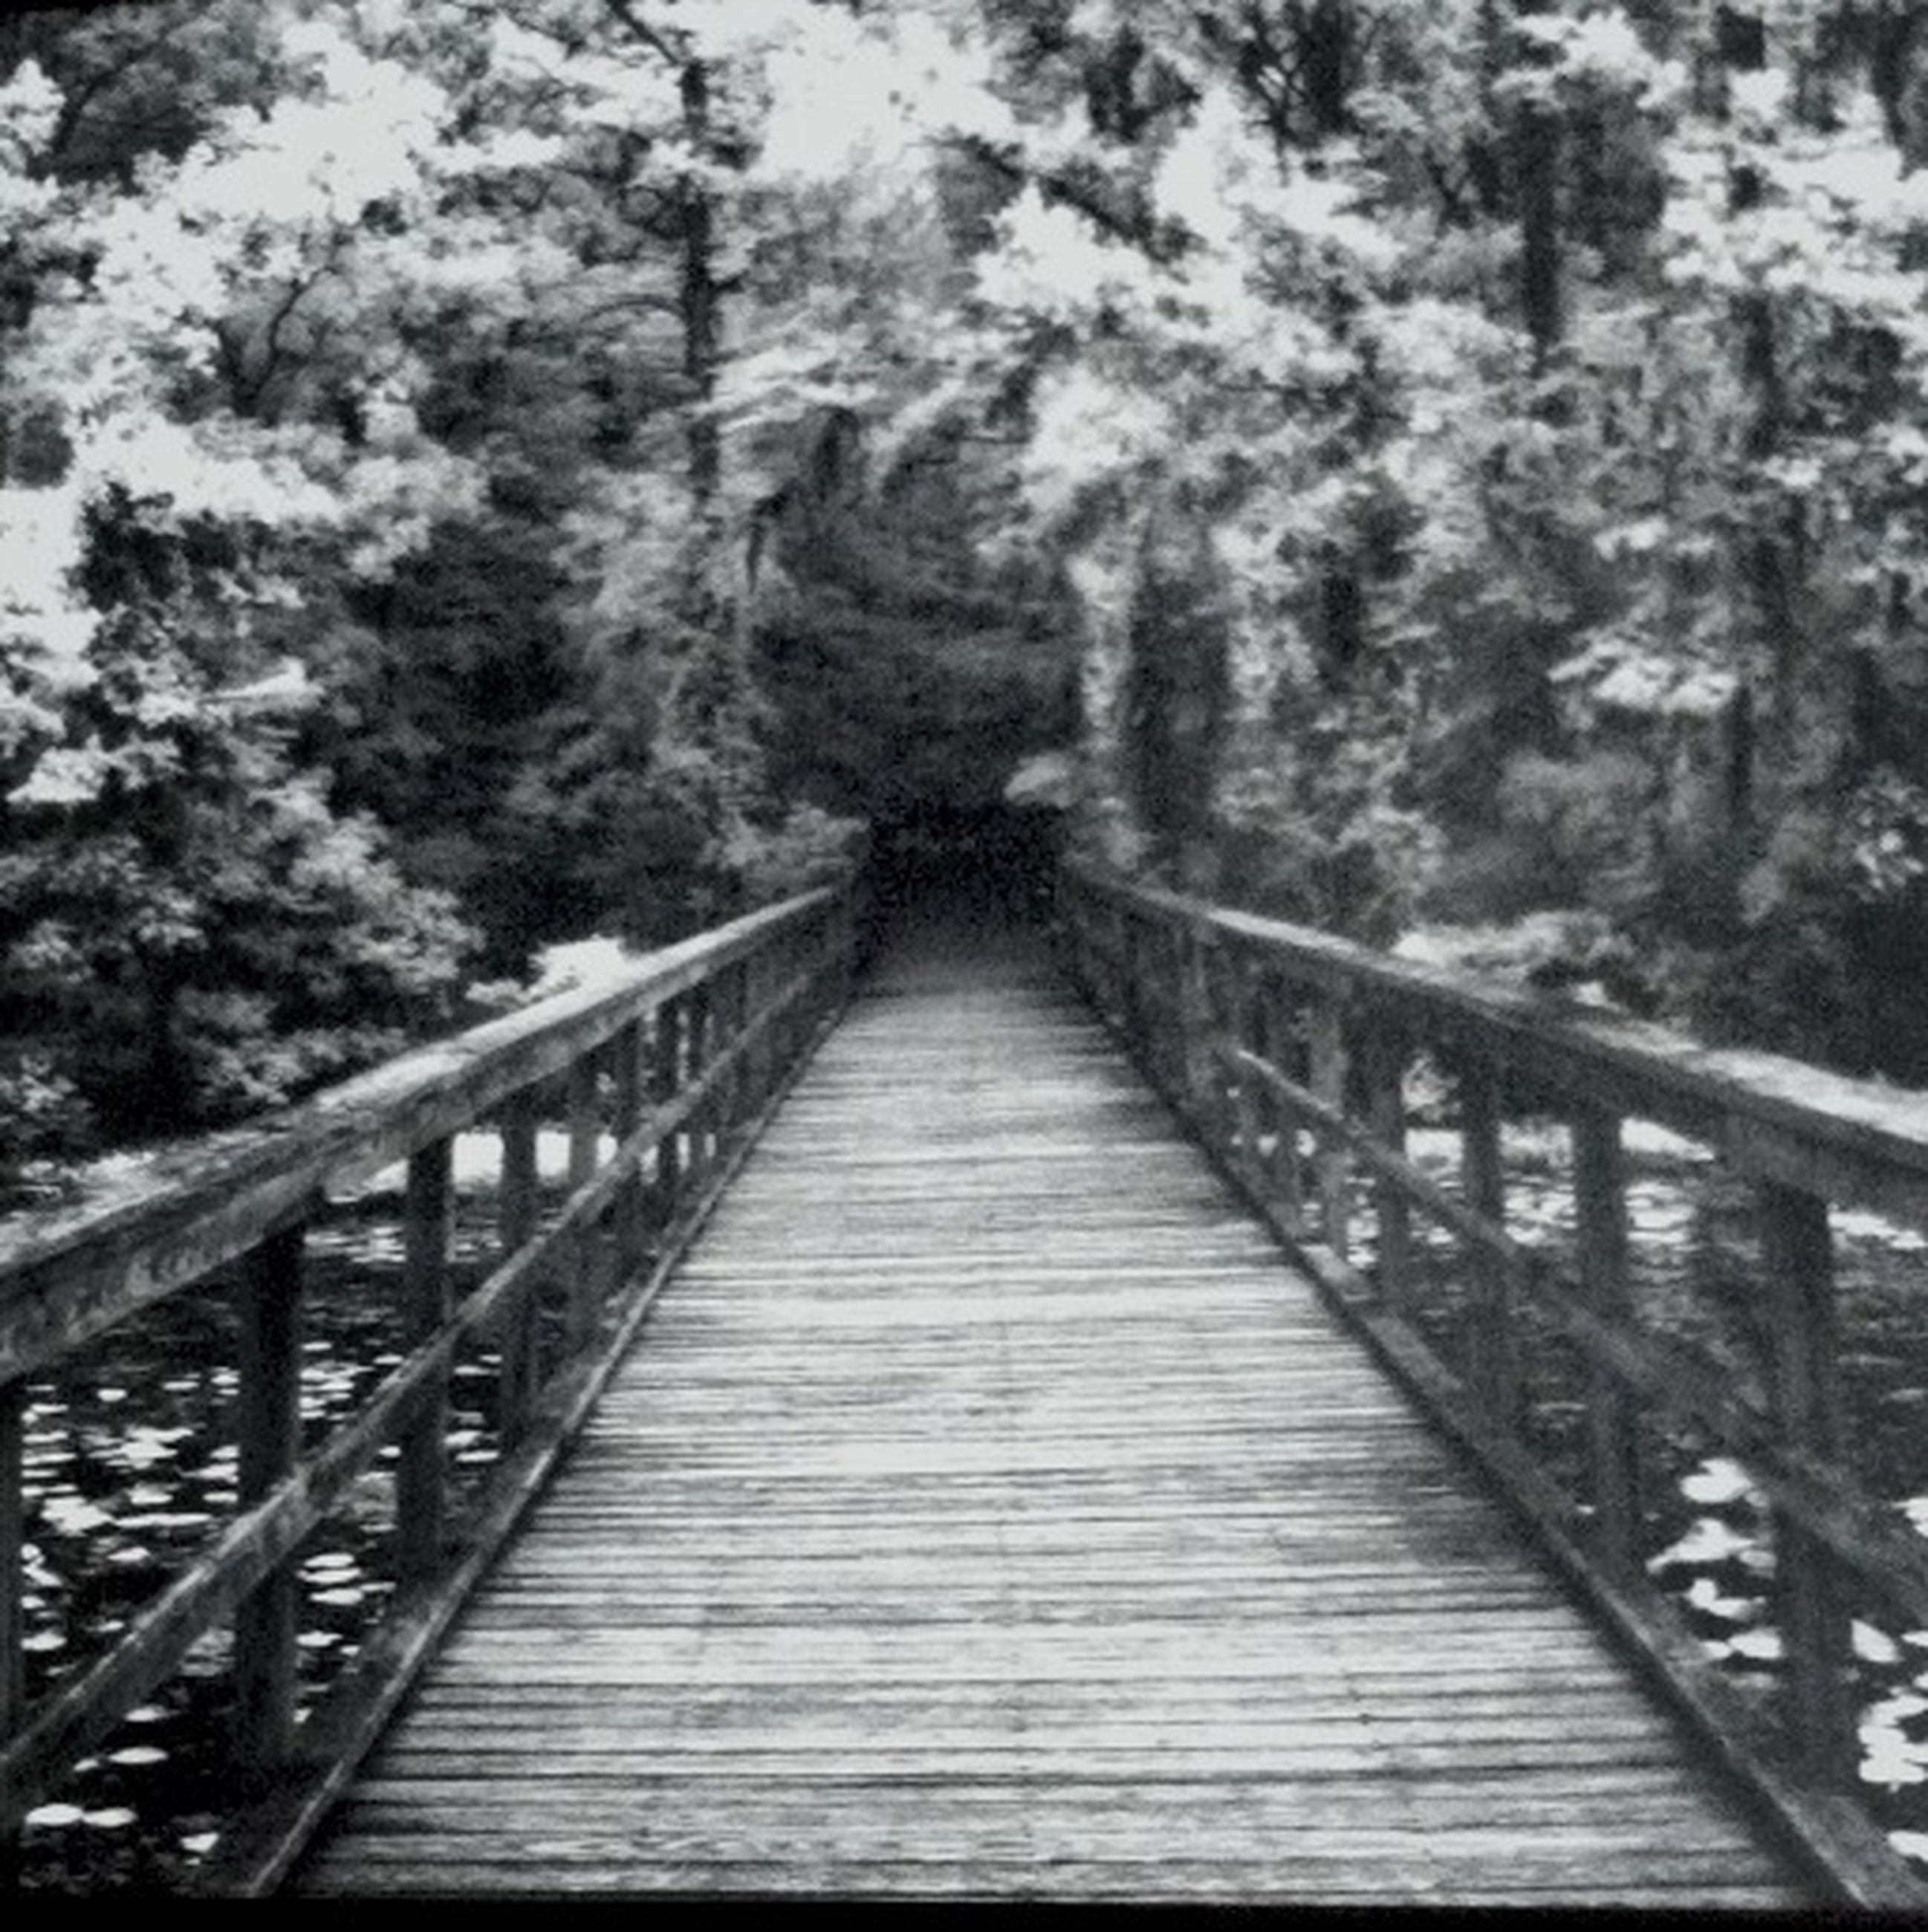 footbridge, railing, connection, the way forward, bridge - man made structure, tree, diminishing perspective, wood - material, bridge, built structure, tranquility, forest, nature, boardwalk, vanishing point, architecture, tranquil scene, day, long, outdoors